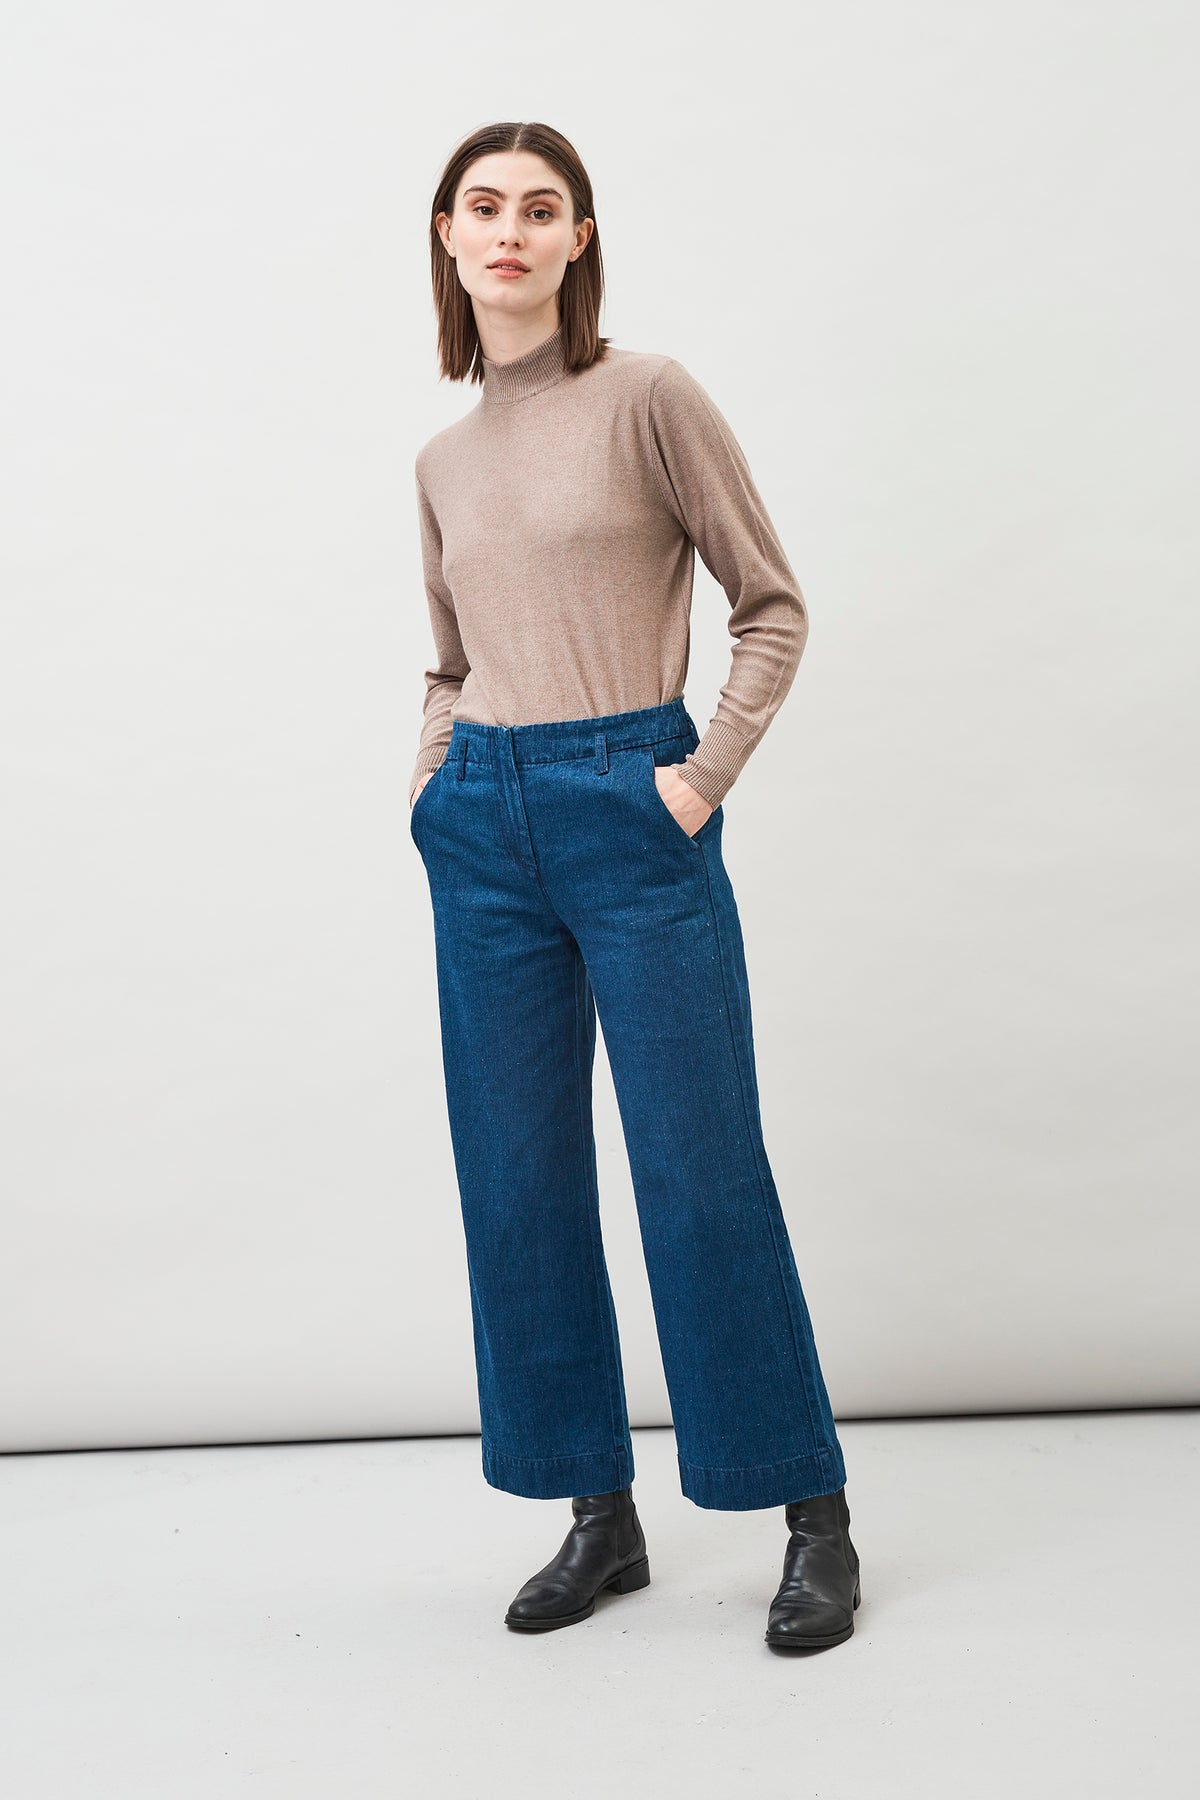 Leja Hemp Organic Cotton Cropped Jeans with a wide-leg silhouette made of cotton and indigo dyed hemp.